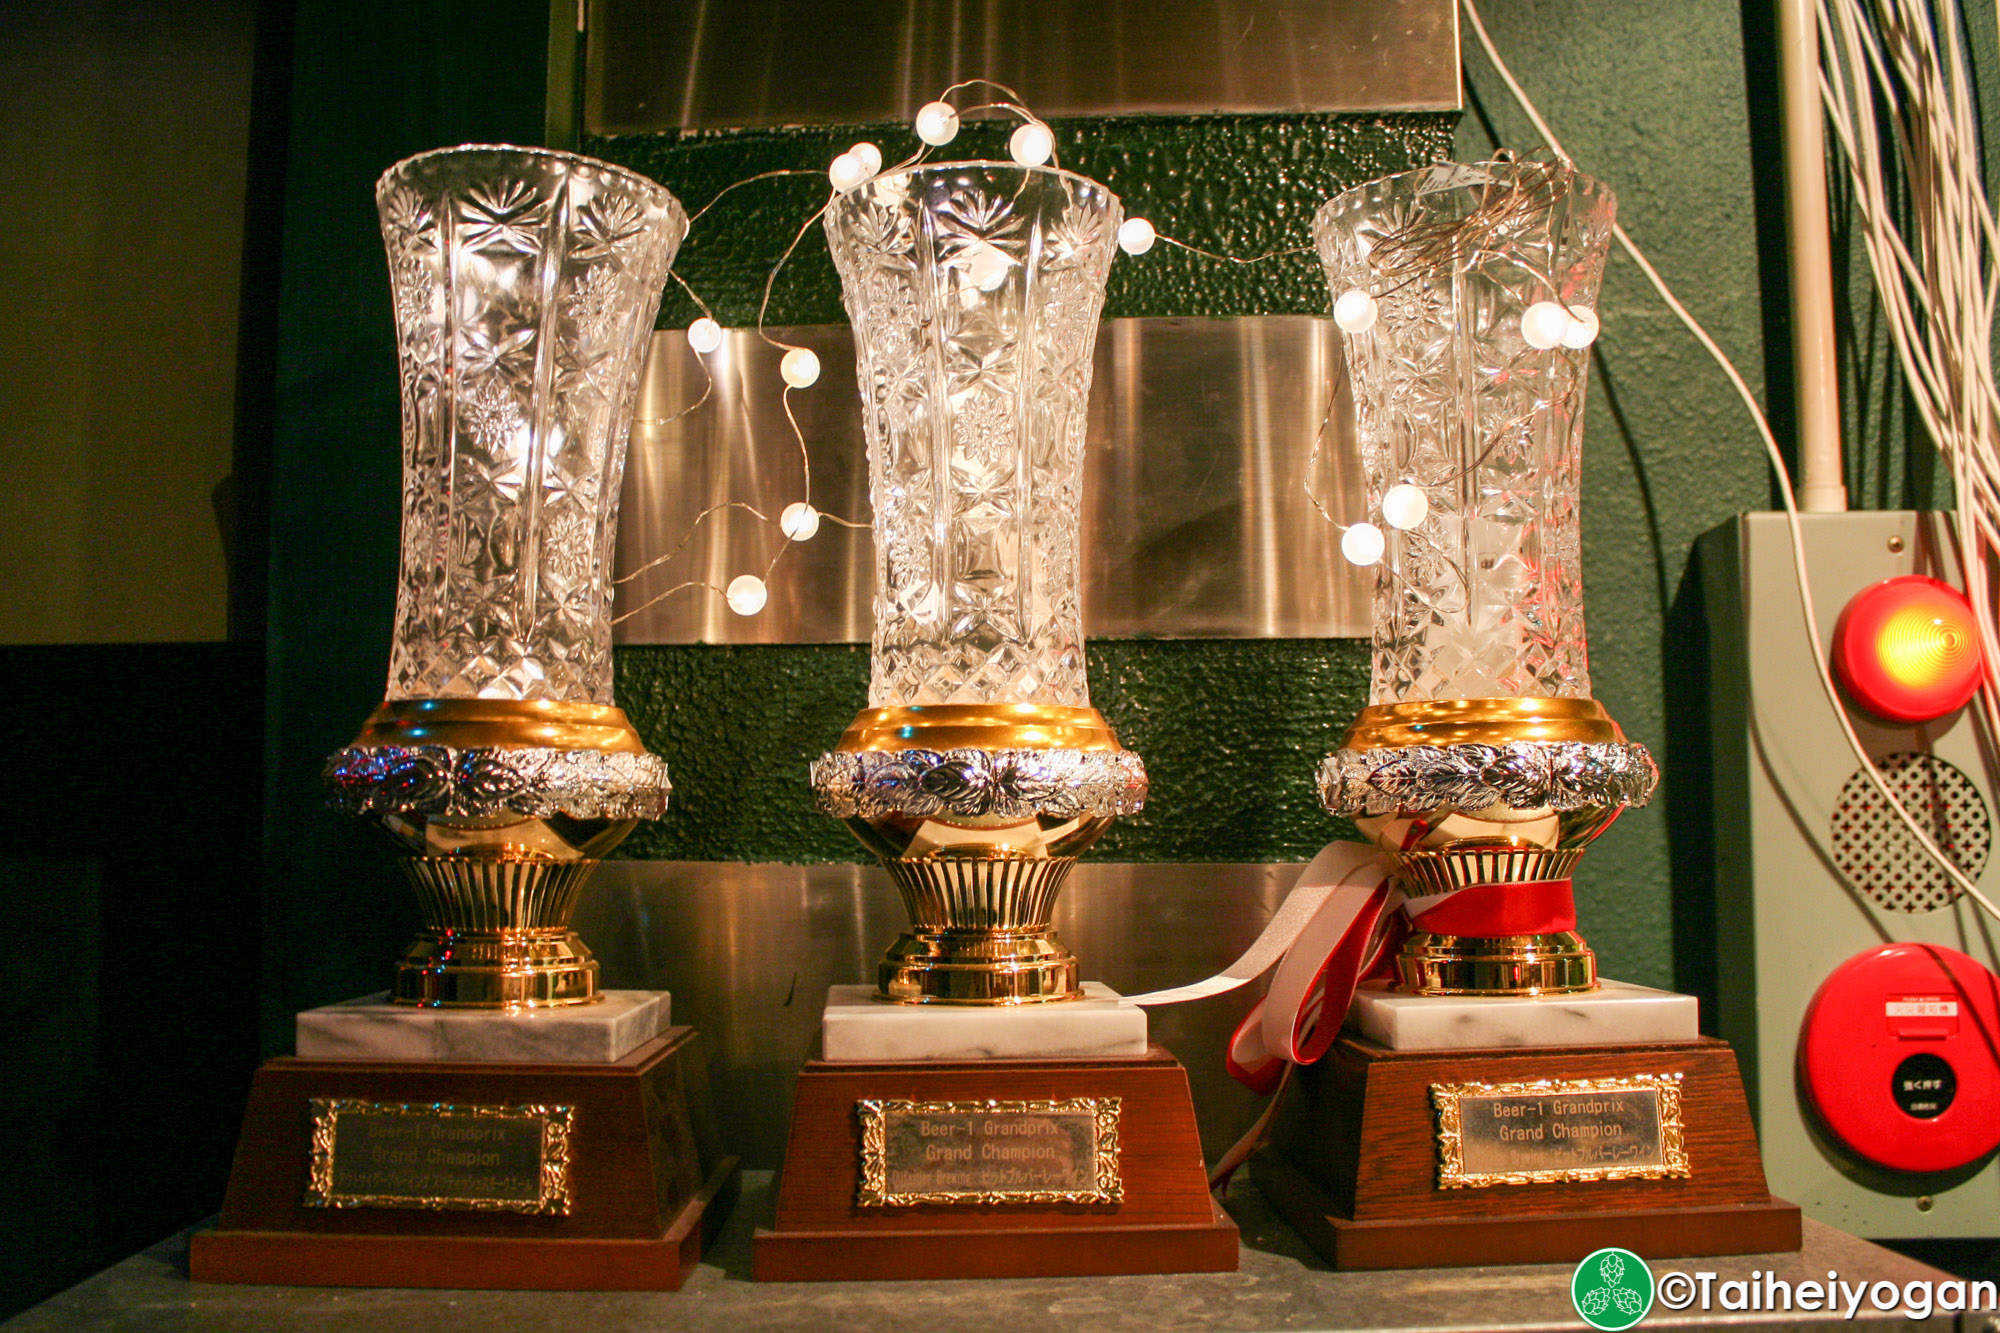 Hops & Herbs - Interior - Decorations - Outsider Brewing Craft Beer Awards